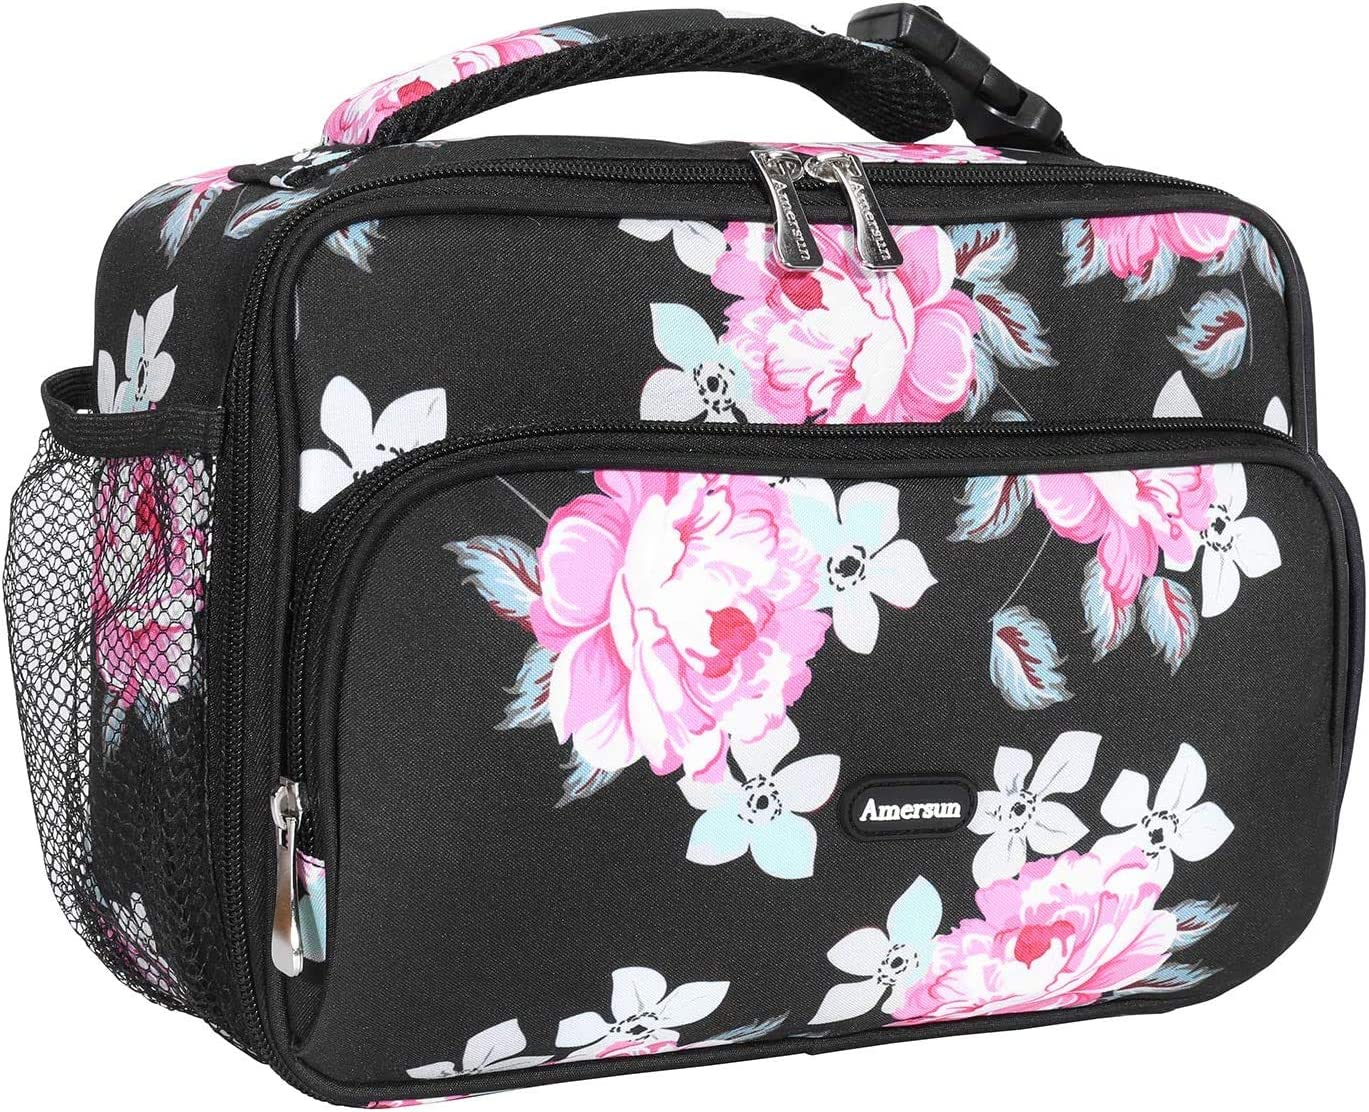 Amersun Kids Lunch Box,Durable Insulated School Lunch Bag with Padded Liner Keeps Food Hot Cold for Long Time,Small Thermal Travel Lunch Cooler for Girls Boys-2 Pocket,Black Rose